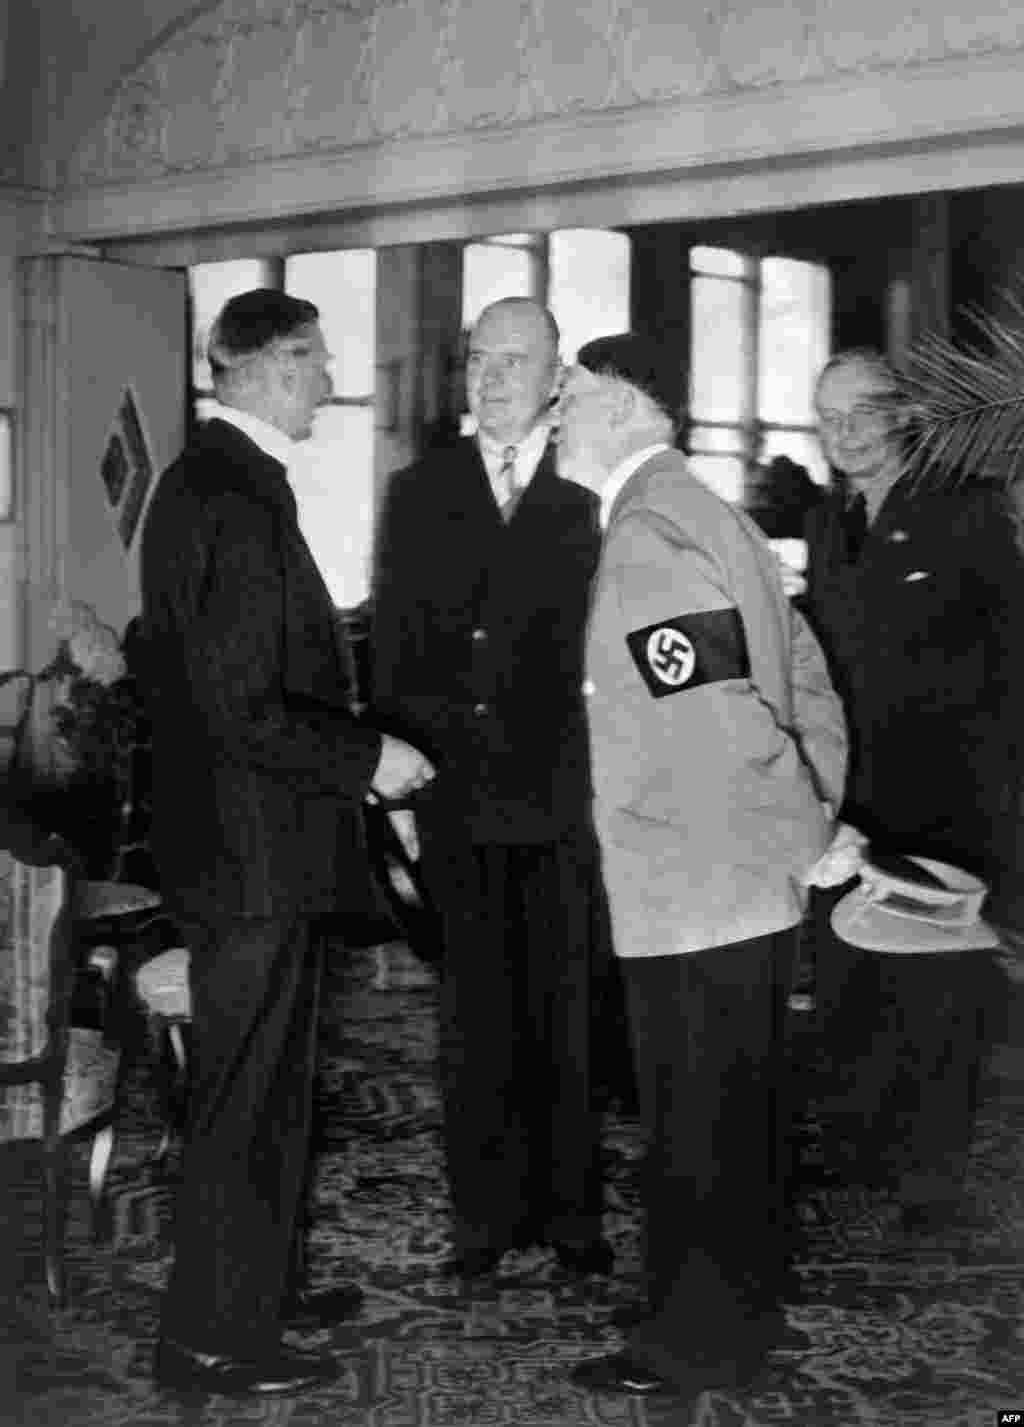 Neville Chamberlain (left) and Adolf Hitler talk with the help of an interpreter as German Nazi Foreign Minister Joachim Von Ribbentrop looks on in the background on September 23, 1938, in Bad Godesburg, Germany.